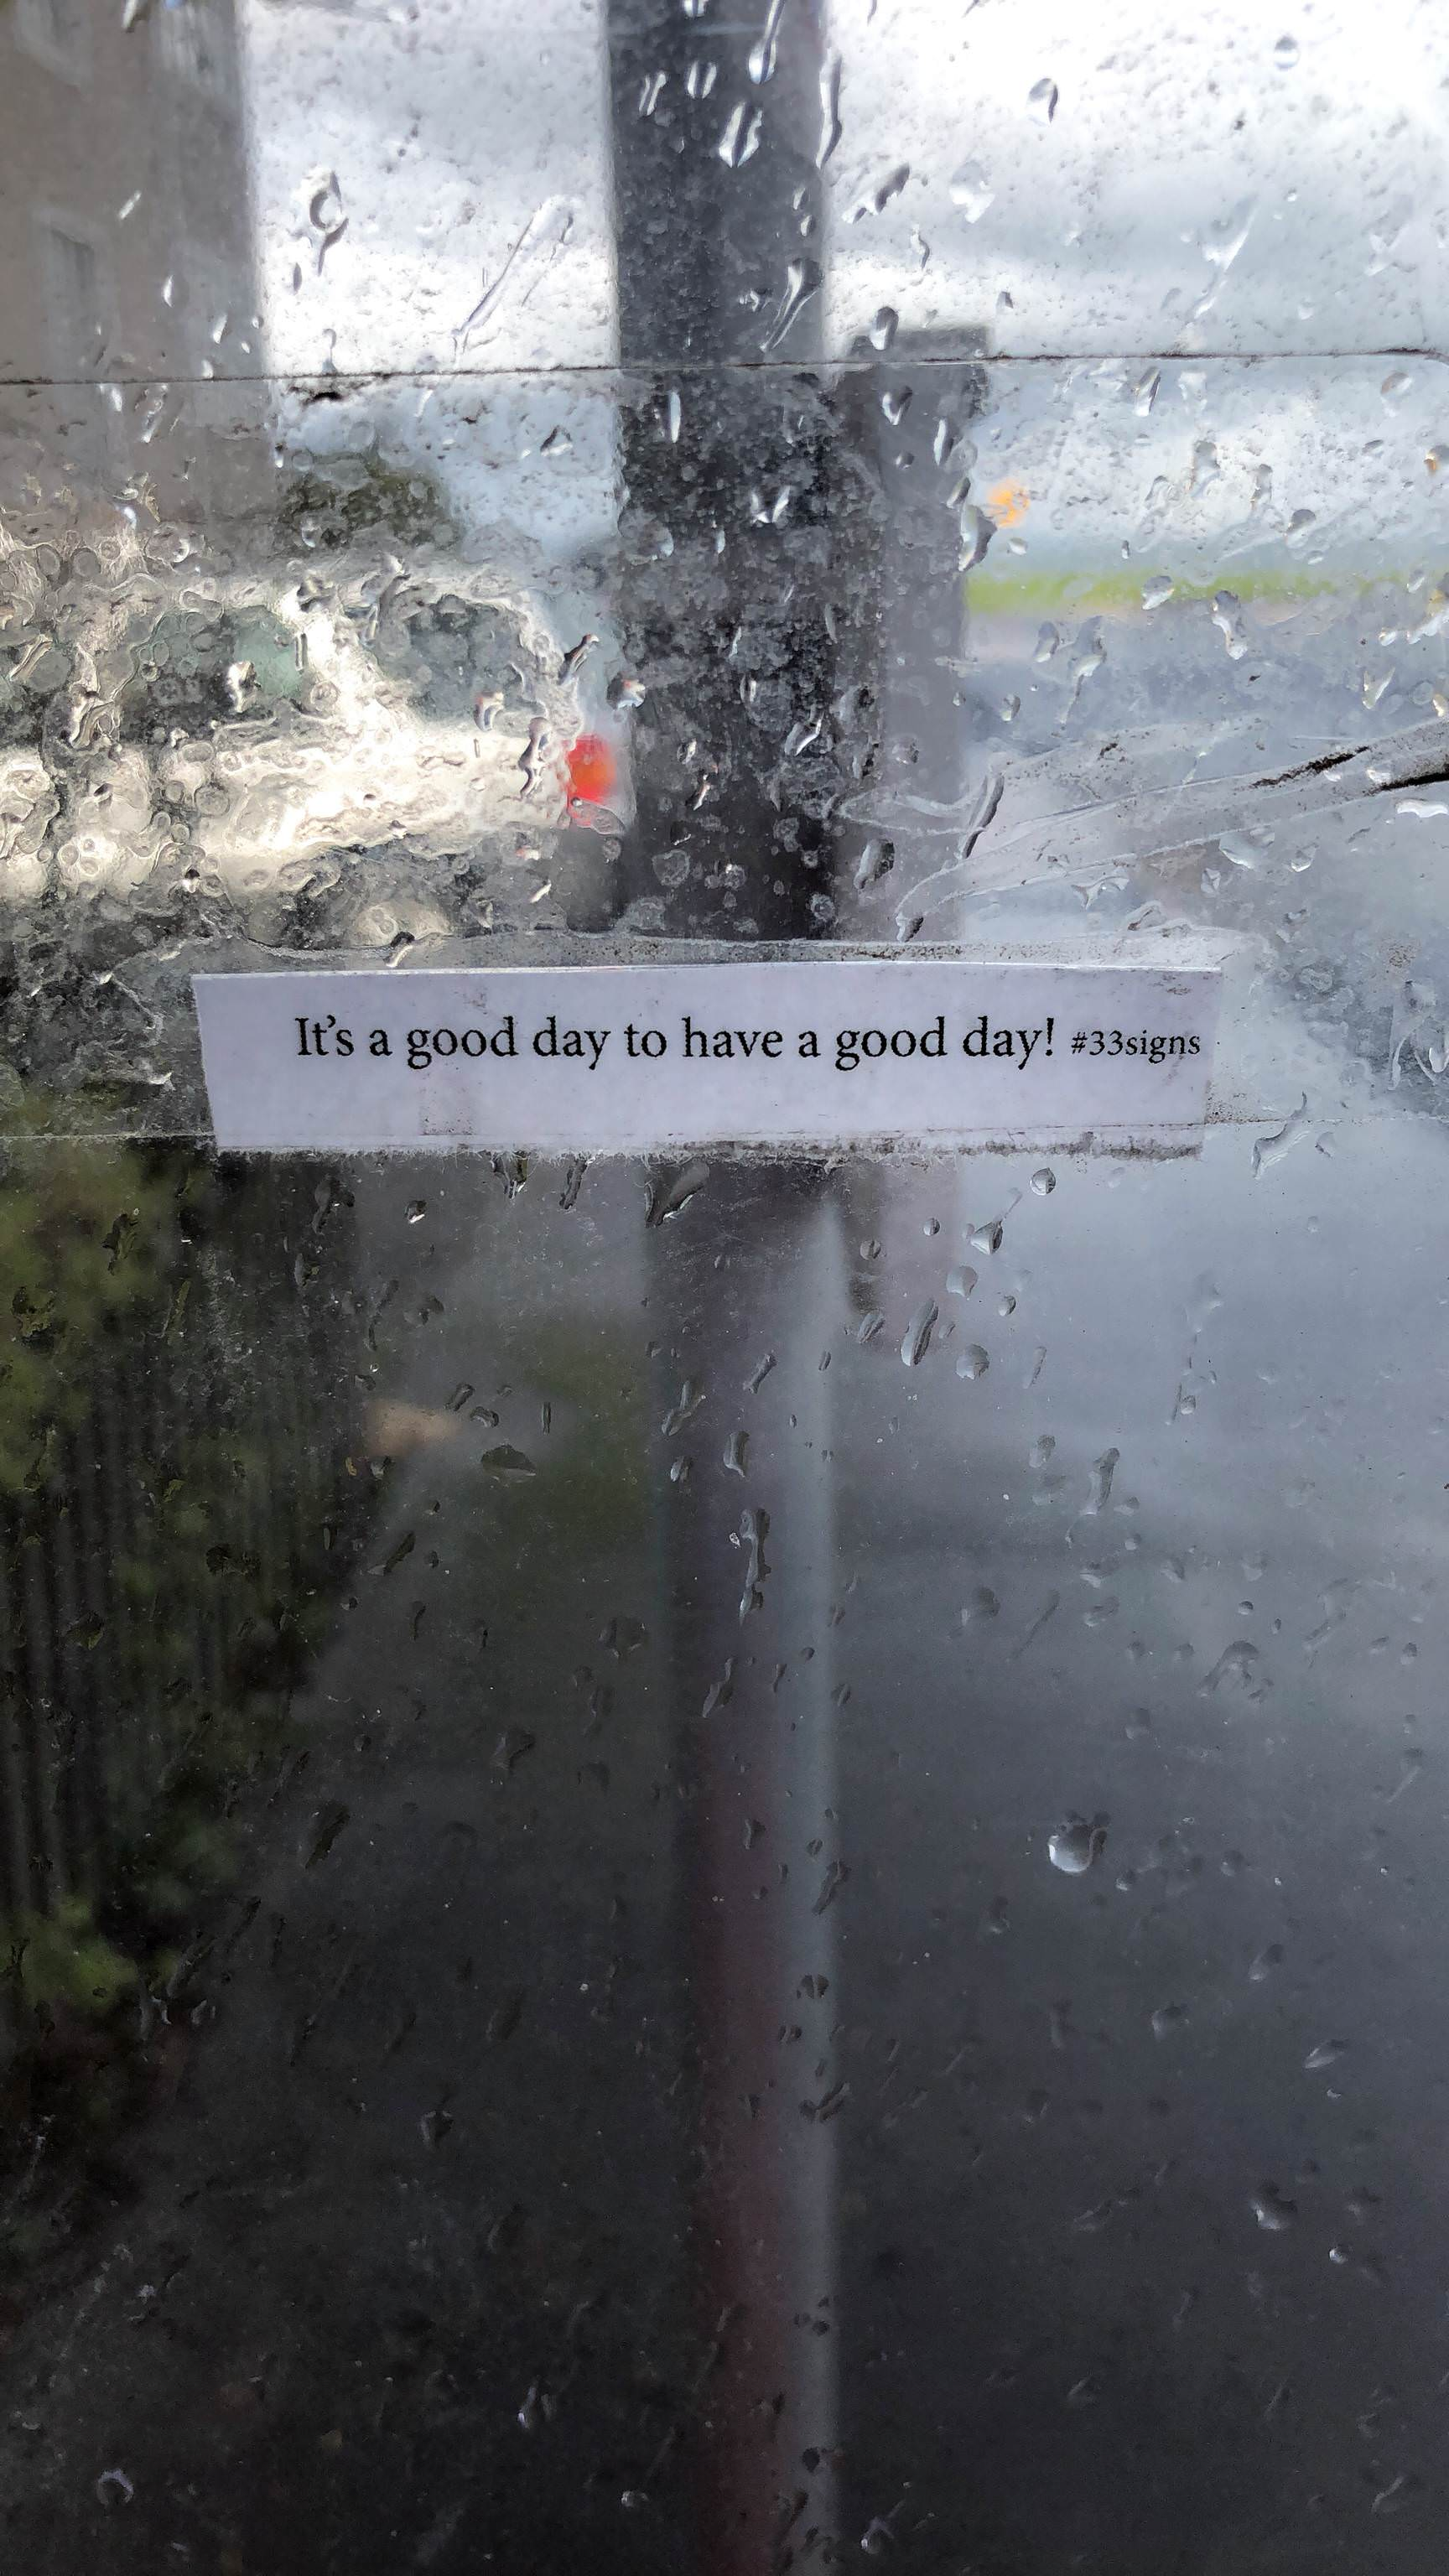 [Image] This message from a bus stop is very true!